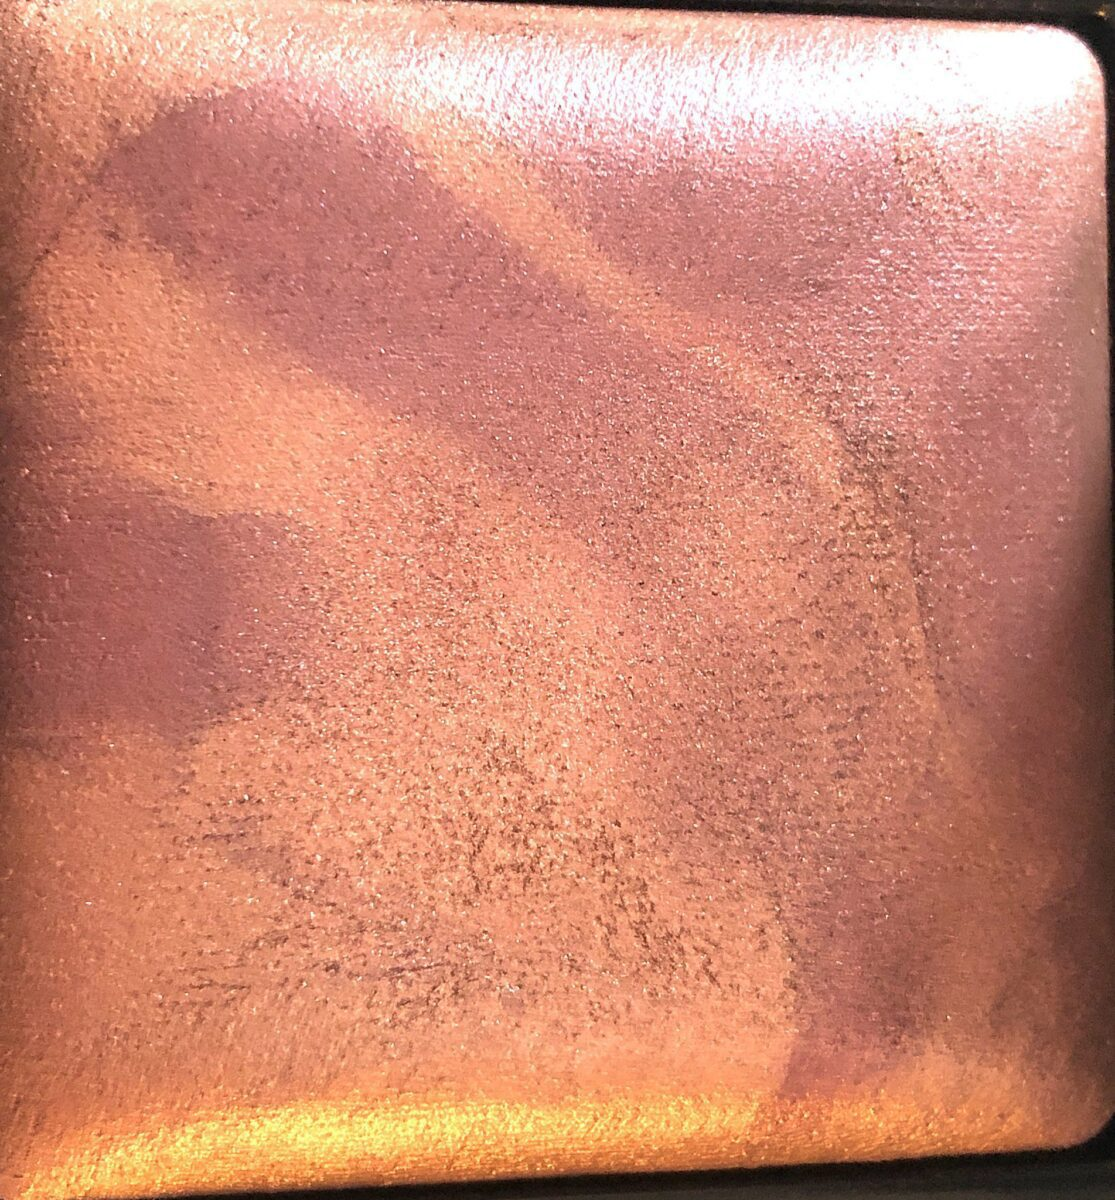 SEVERAL SHADES COME TOGETHER TO CREATE THE RISQUE HIGHLIGHTING POWDER